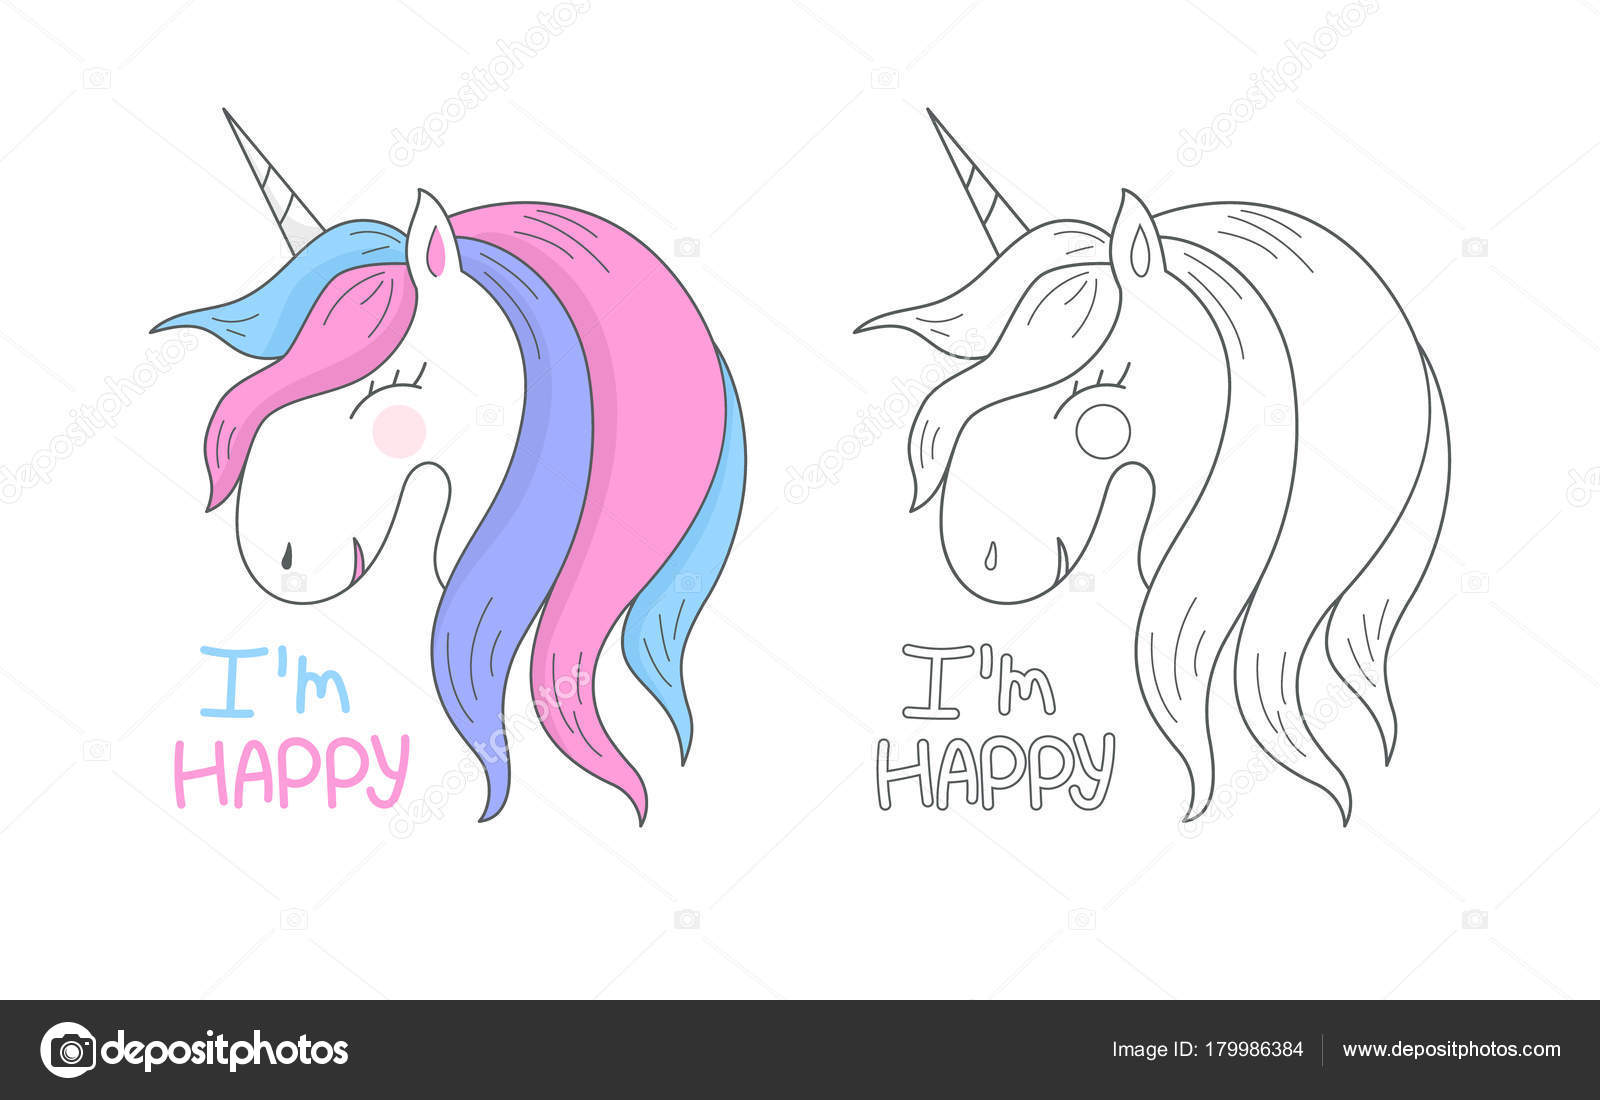 Vector Happy Cute Unicorn Isolated On White Background. Head Portrait  Horse, Outline, Contour. T Shirt Graphic For Kidu0027s Clothing. Use For Print  Design, ...